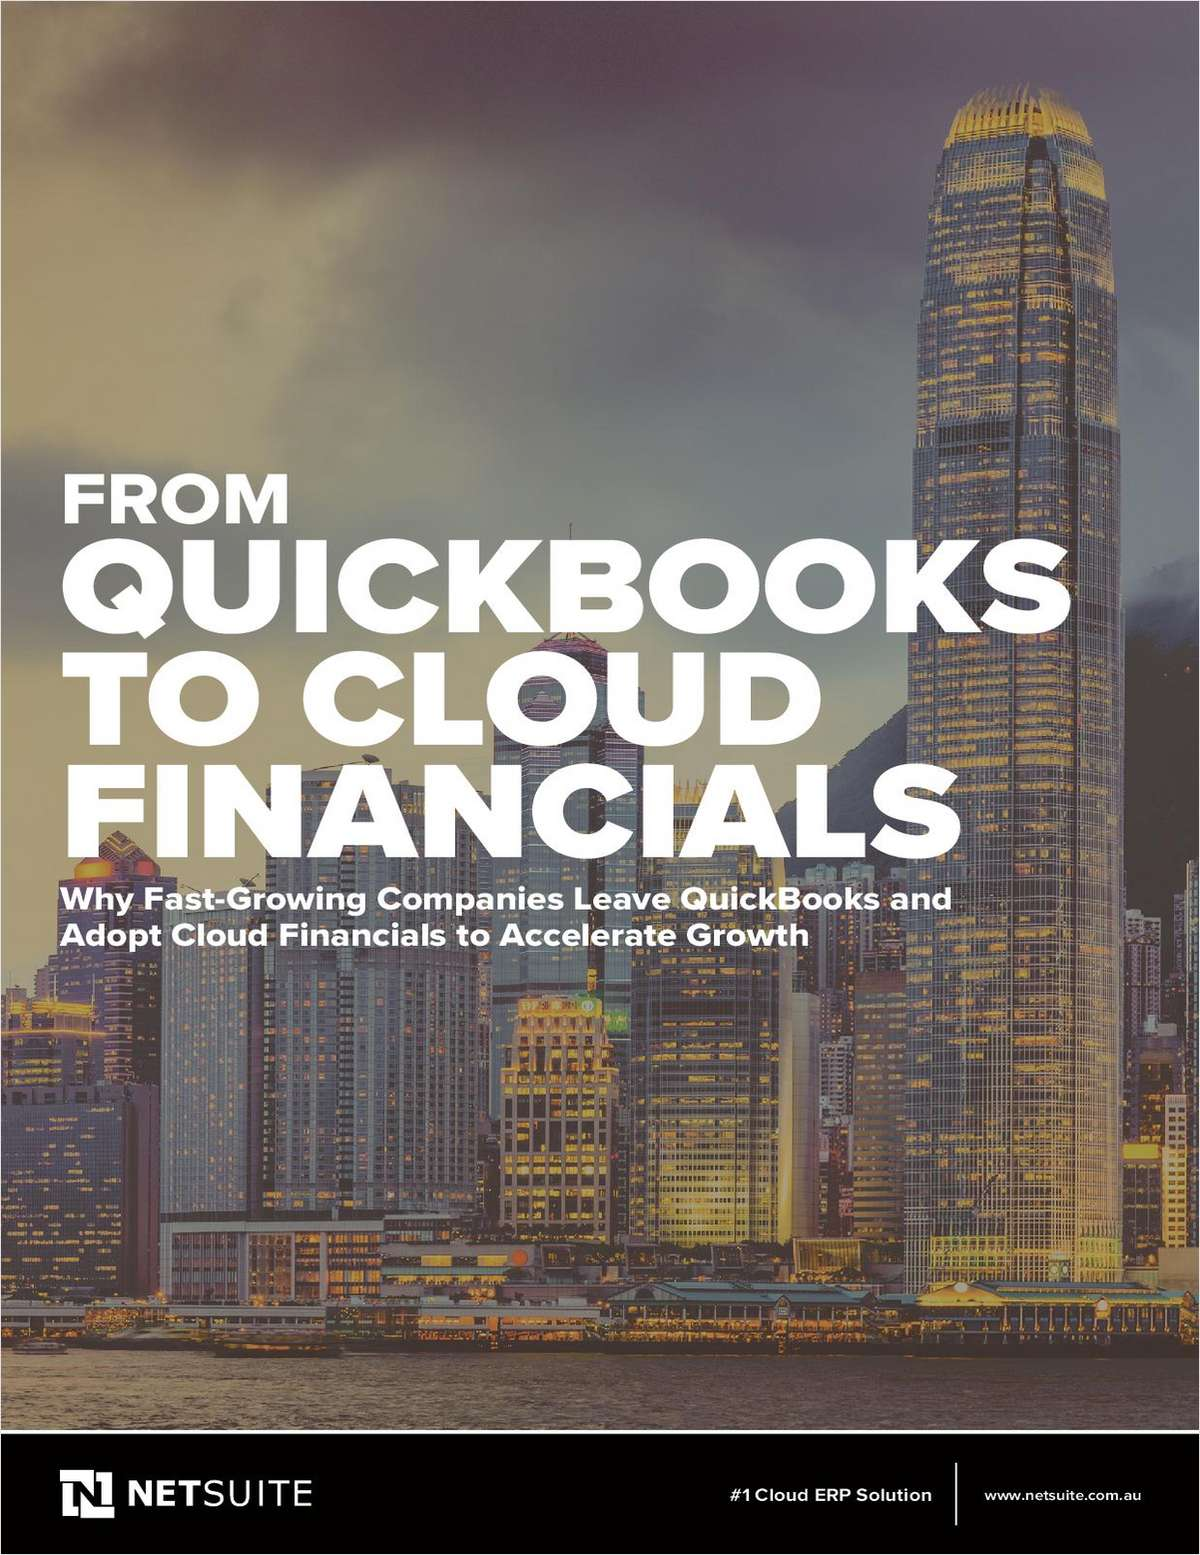 Why Fast-Growing Companies Leave Quickbooks and Adopt Cloud Financials